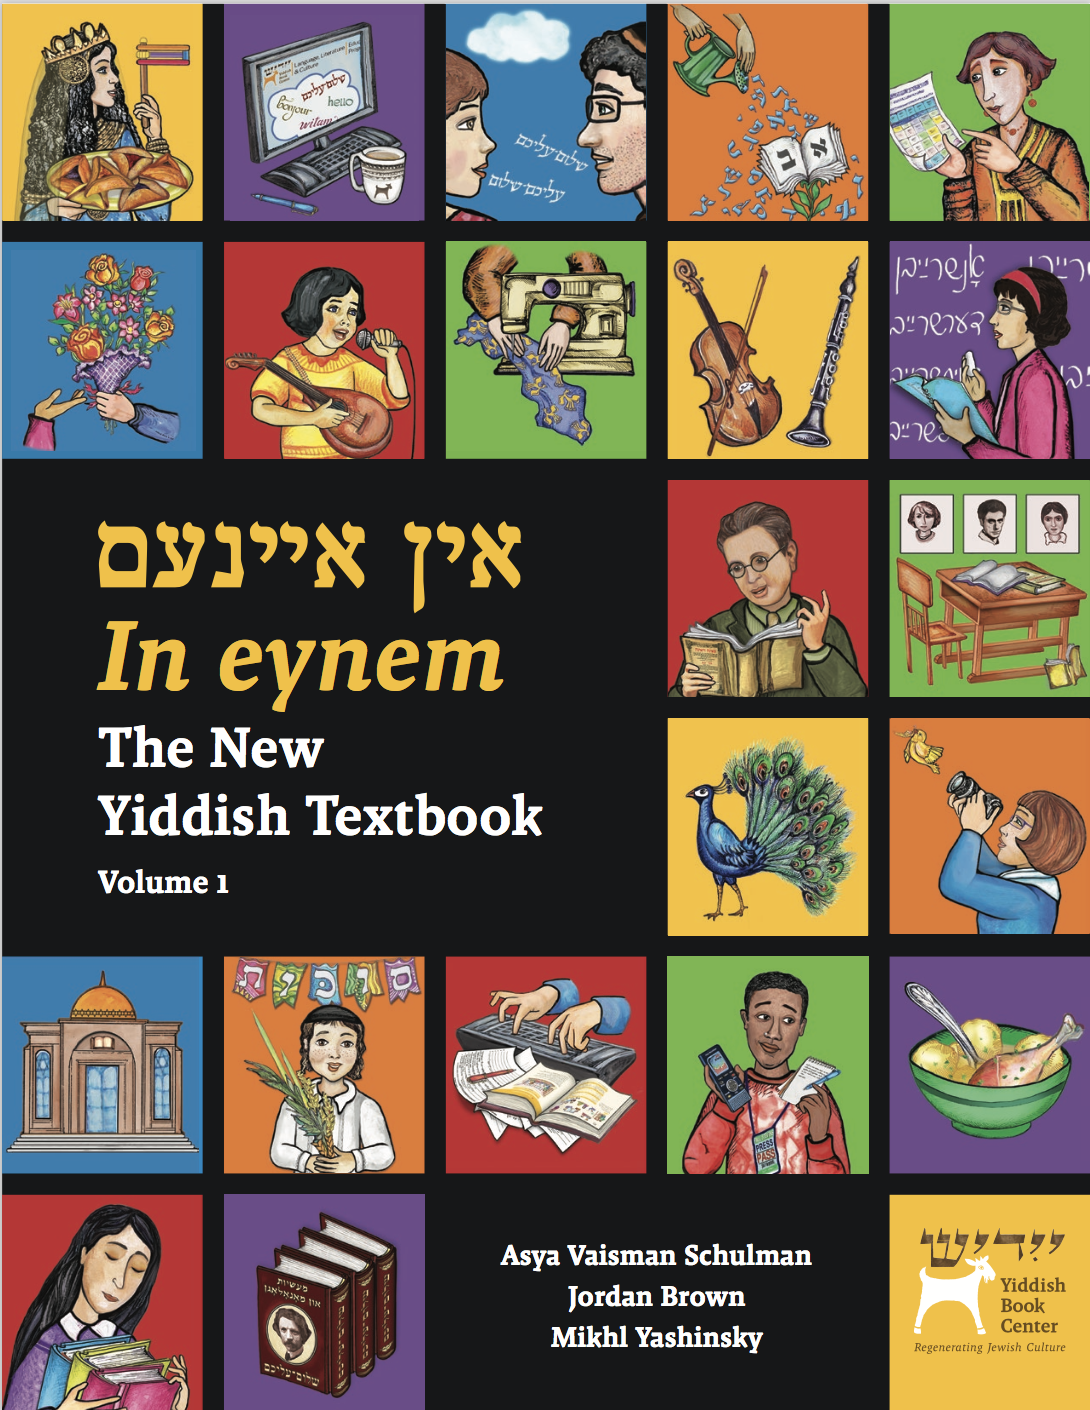 <p>The cover of <em>In eynem</em>, forthcoming in summer 2020 from the White Goat Press, the imprint of the Yiddish Book Center, with illustrations by Alexander Vaisman and Shura&nbsp;Vaisman.</p>